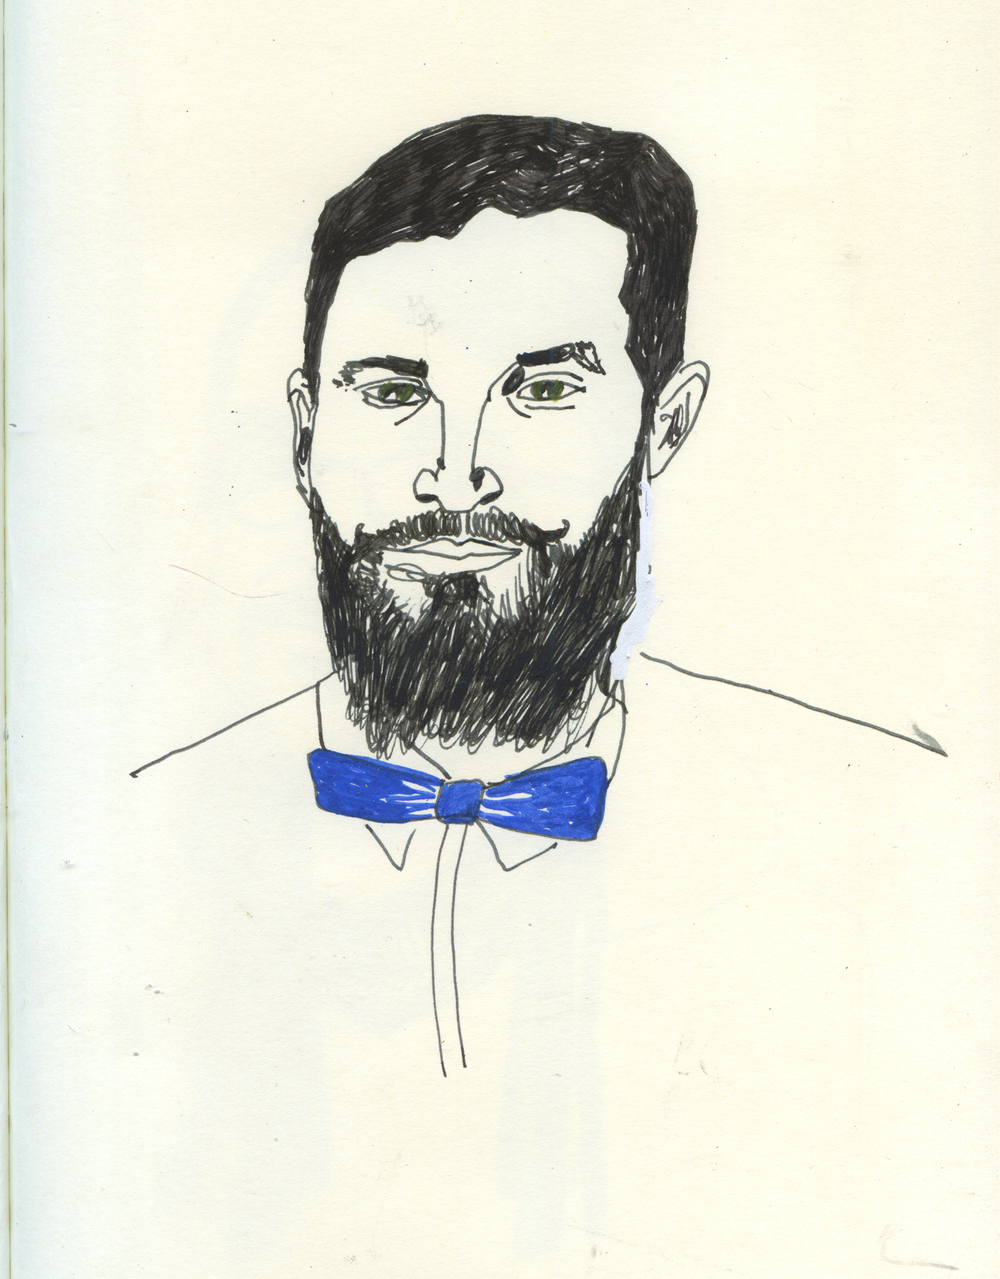 Scarosso, Shoe Brand, Berlin. A series of portraits of men for their website